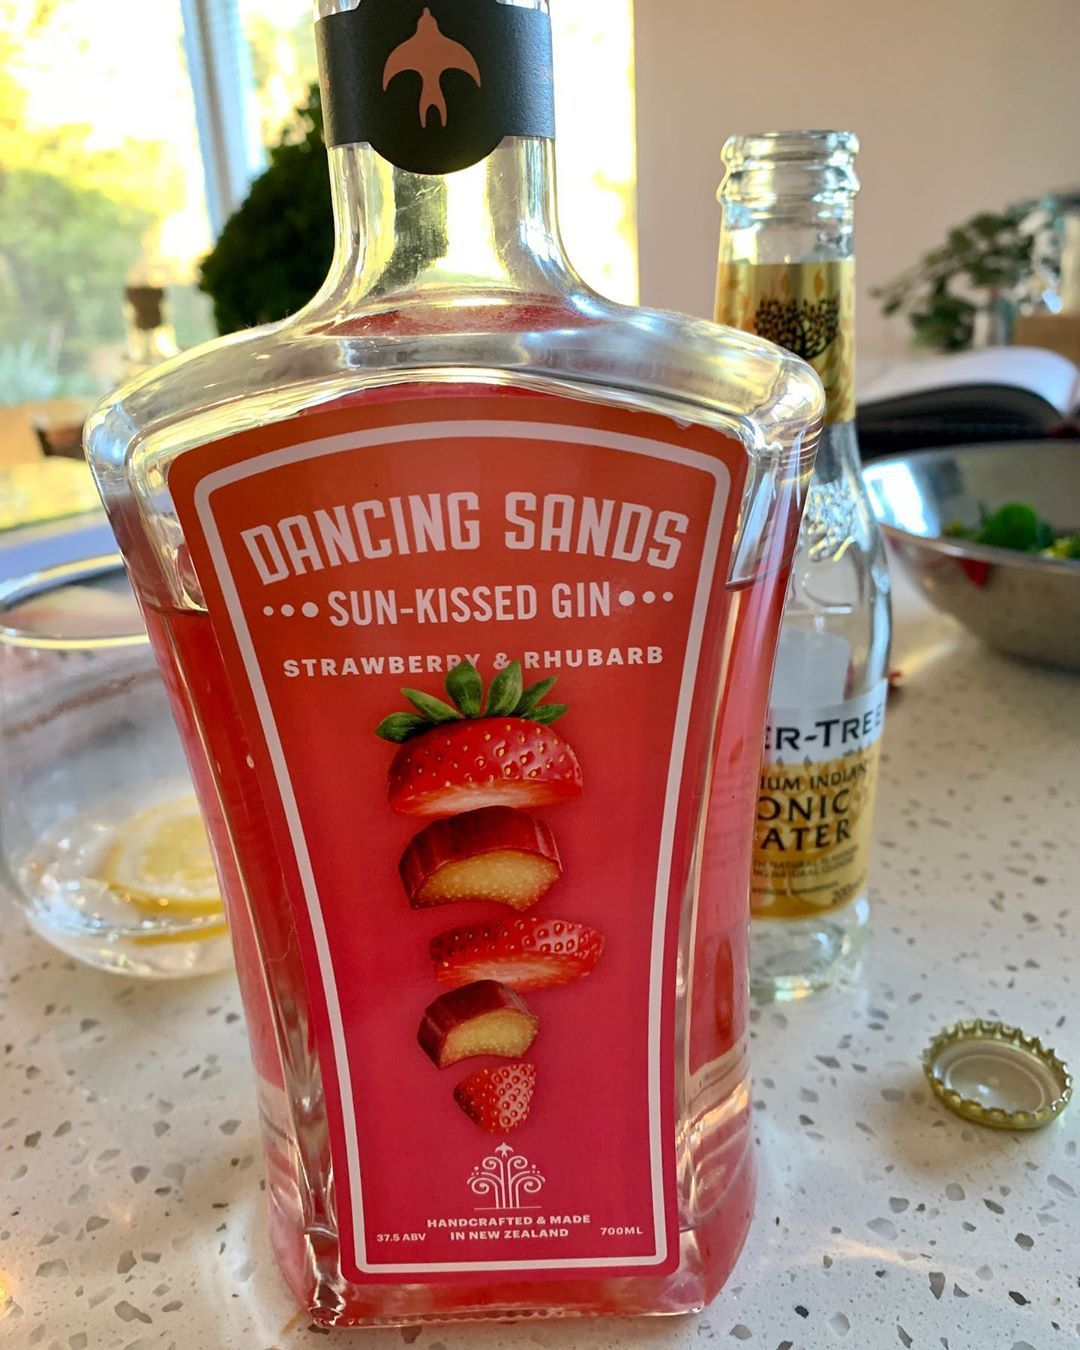 This Is Without Question My Favourite Gin In The Universe How It Manages Sweet And Spice While Maintaining That Distinctive Gin Flavo In 2020 Food Gin Lovers Rhubarb